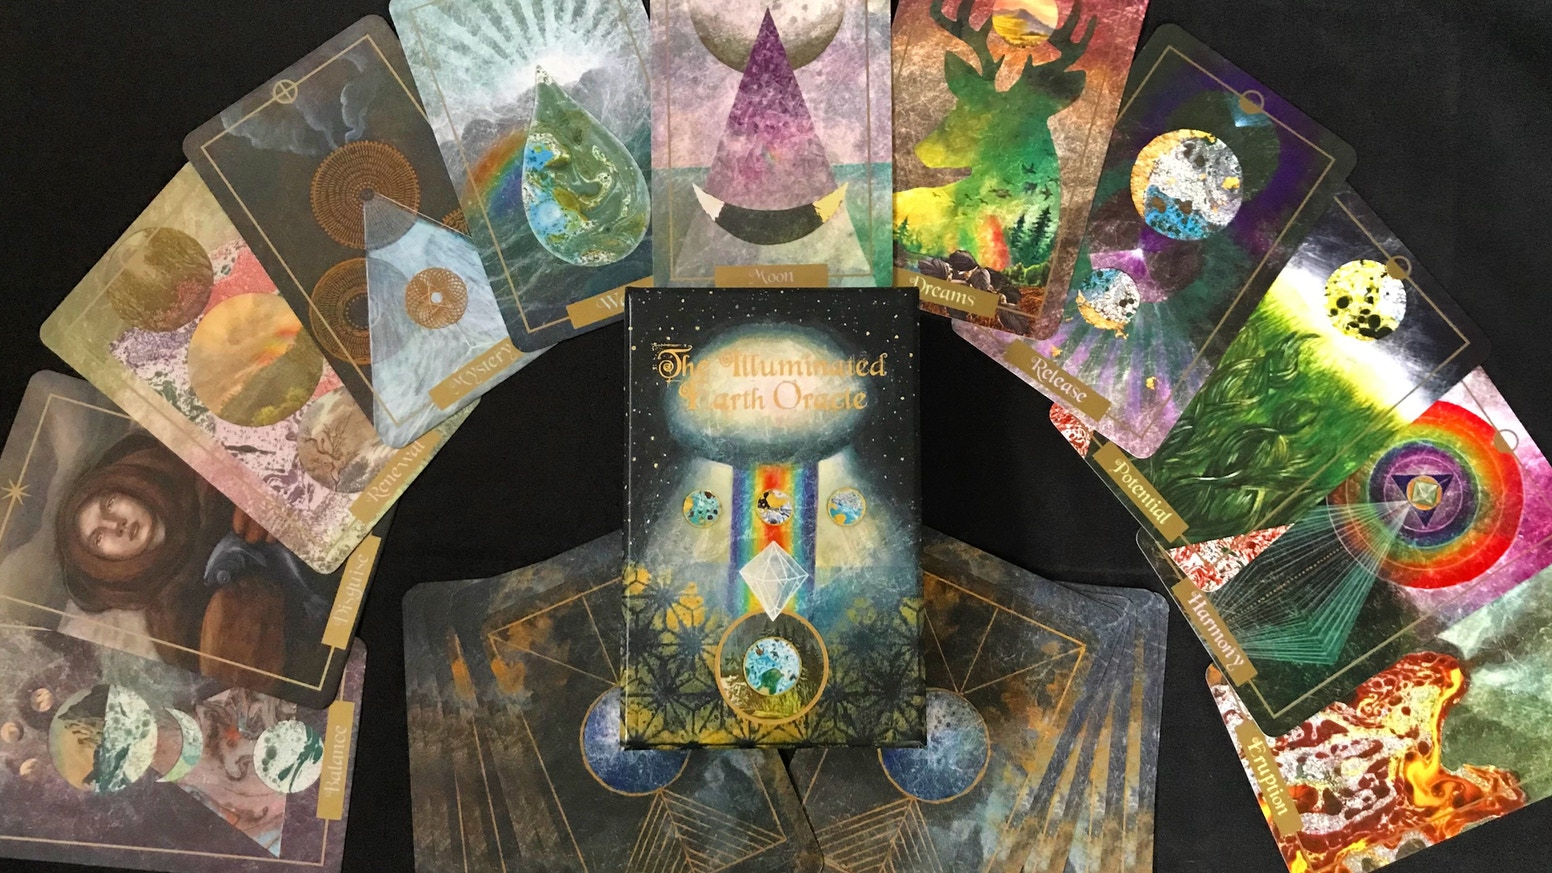 The second printing for my original hand-painted and collaged oracle deck inspired by the beauty and mystery of the natural world.